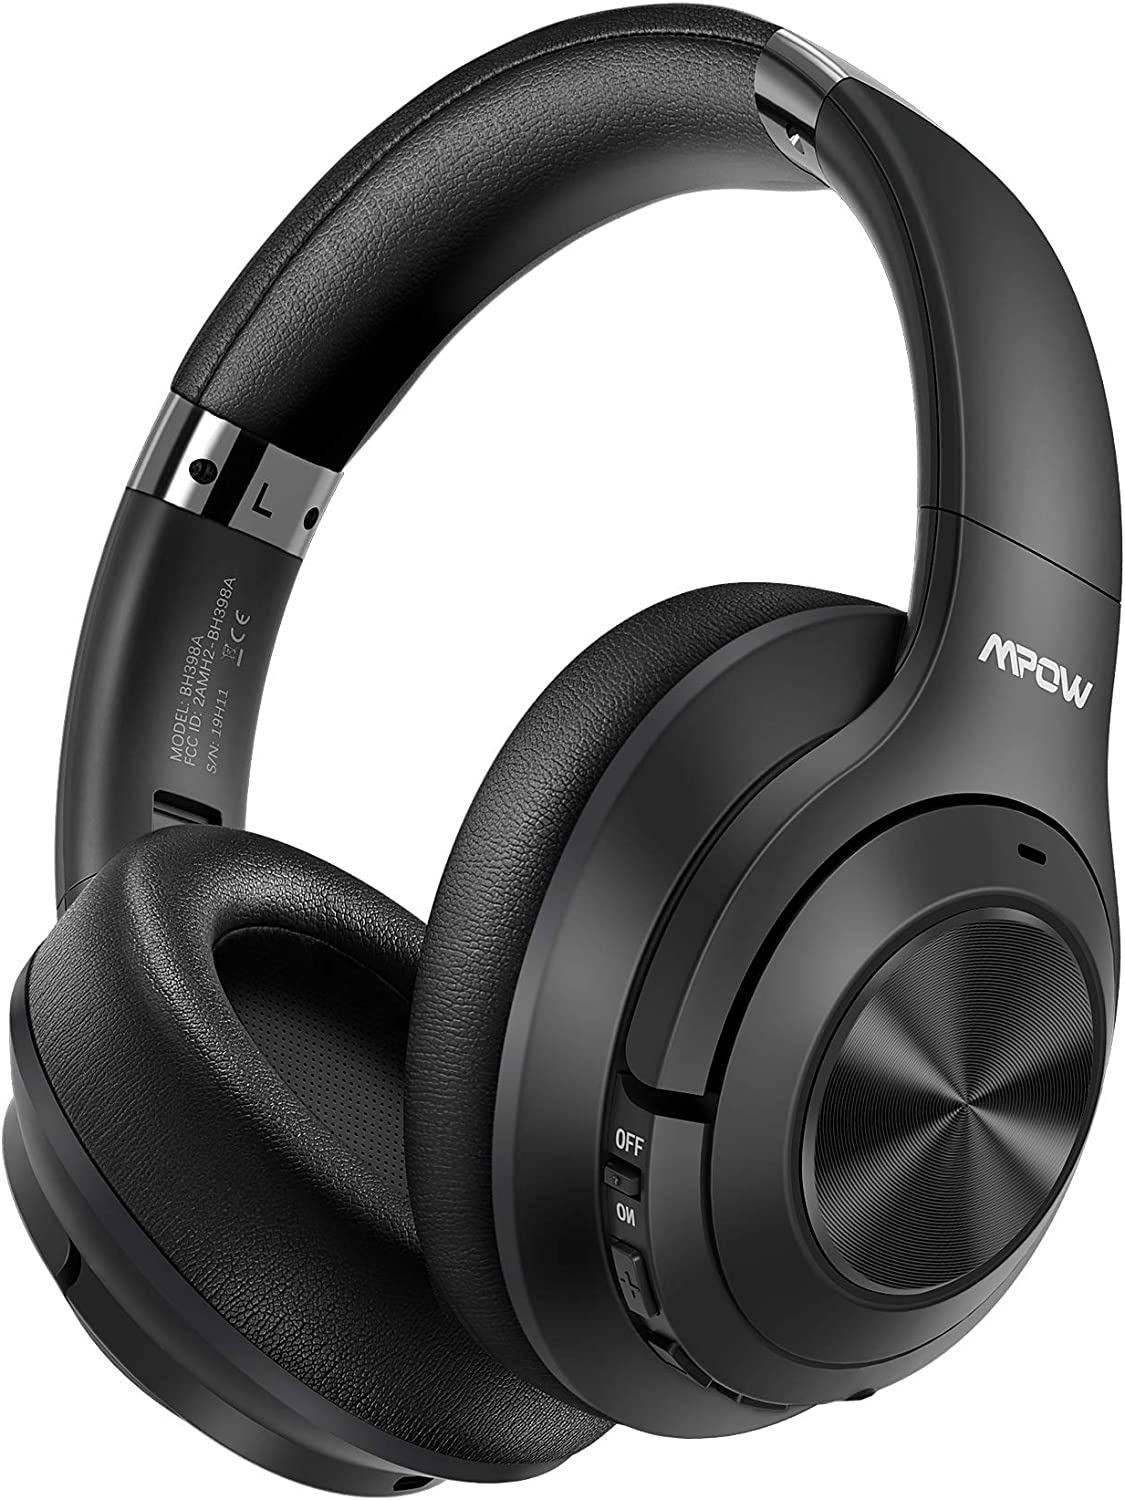 Mpow H21 Hybrid Noise Cancelling Headphones